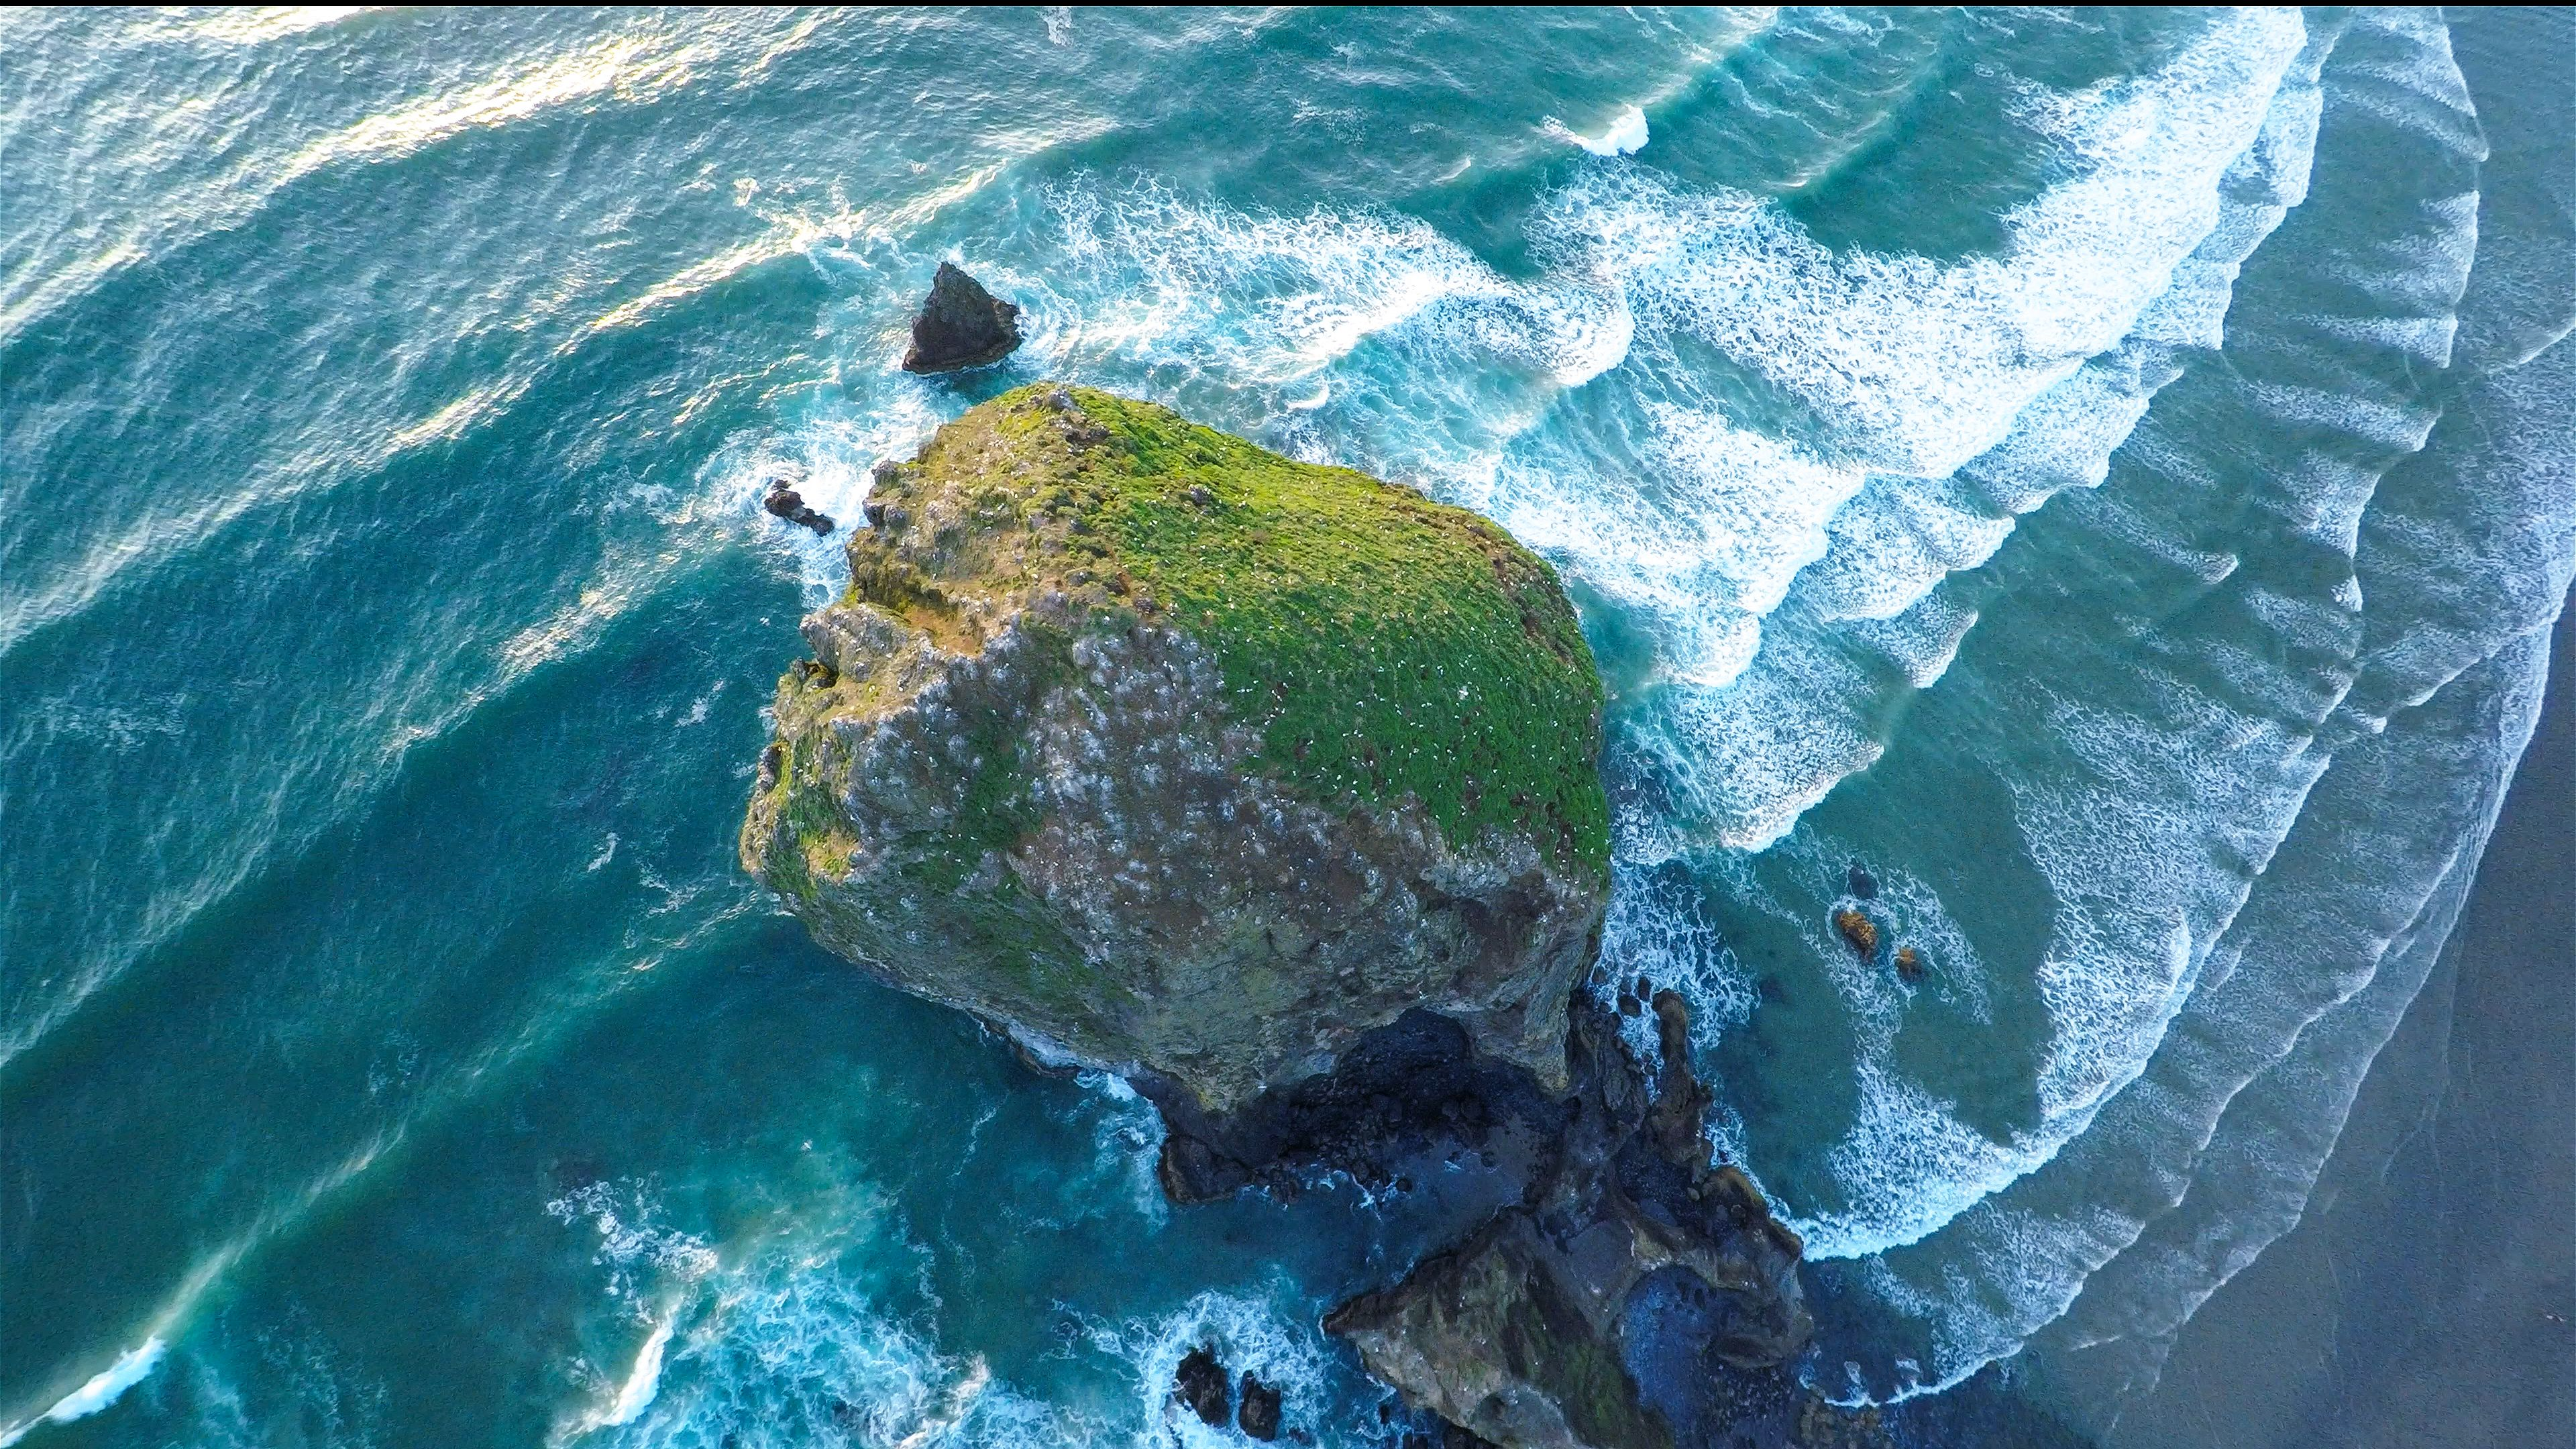 This Aerial Photo Of Haystack Rock In Cannon Beach Oregon Was Taken With A DJI Phantom